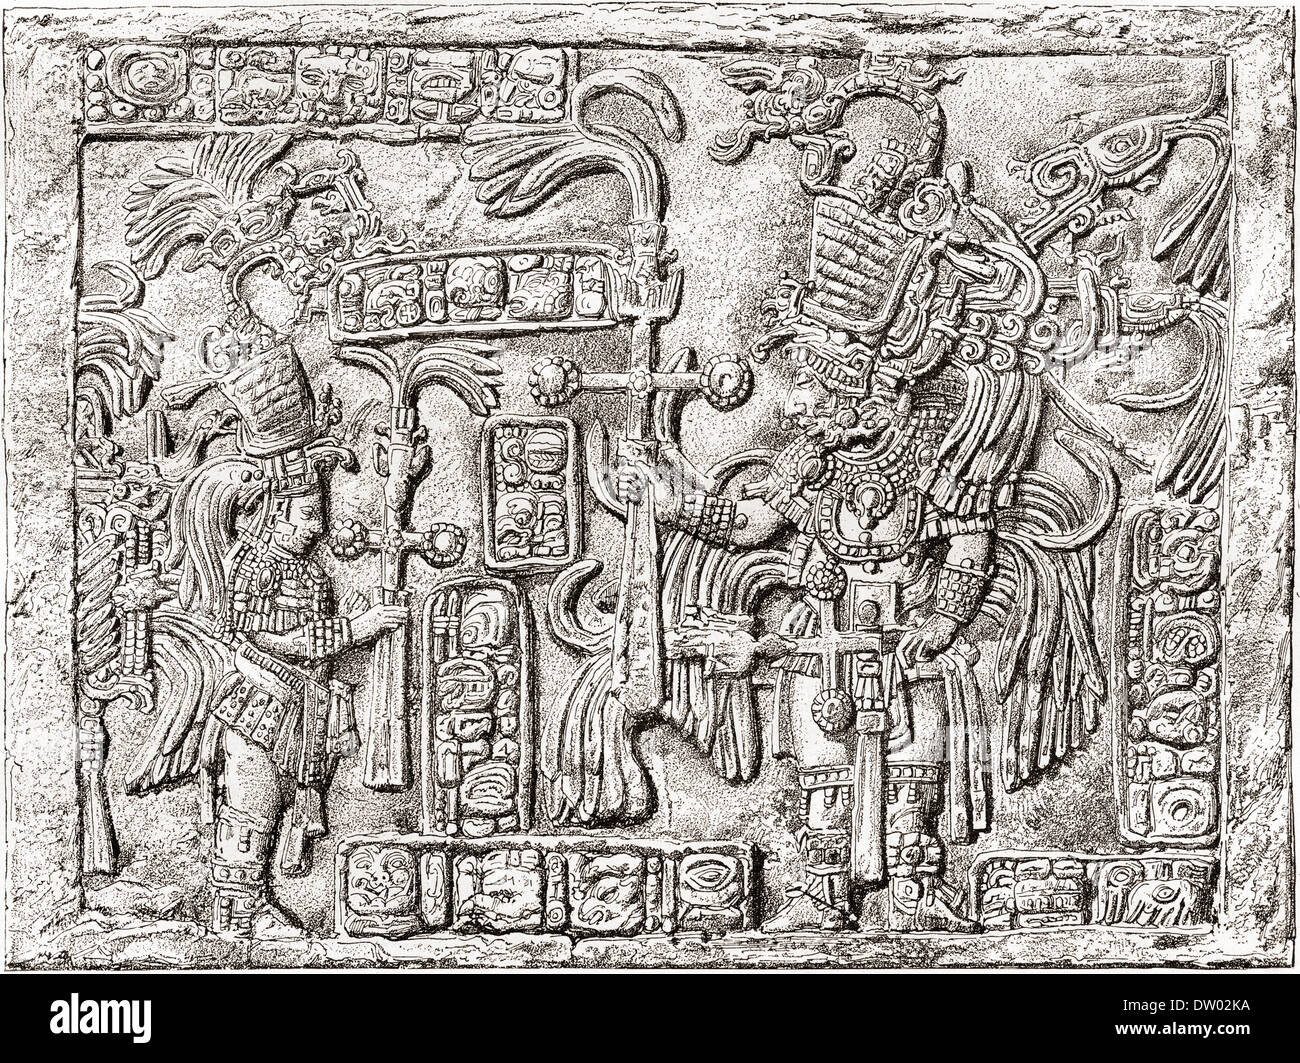 Decorative Lintel from the ancient Mayan city of Yaxchilan, Chiapas, Mexico. - Stock Image